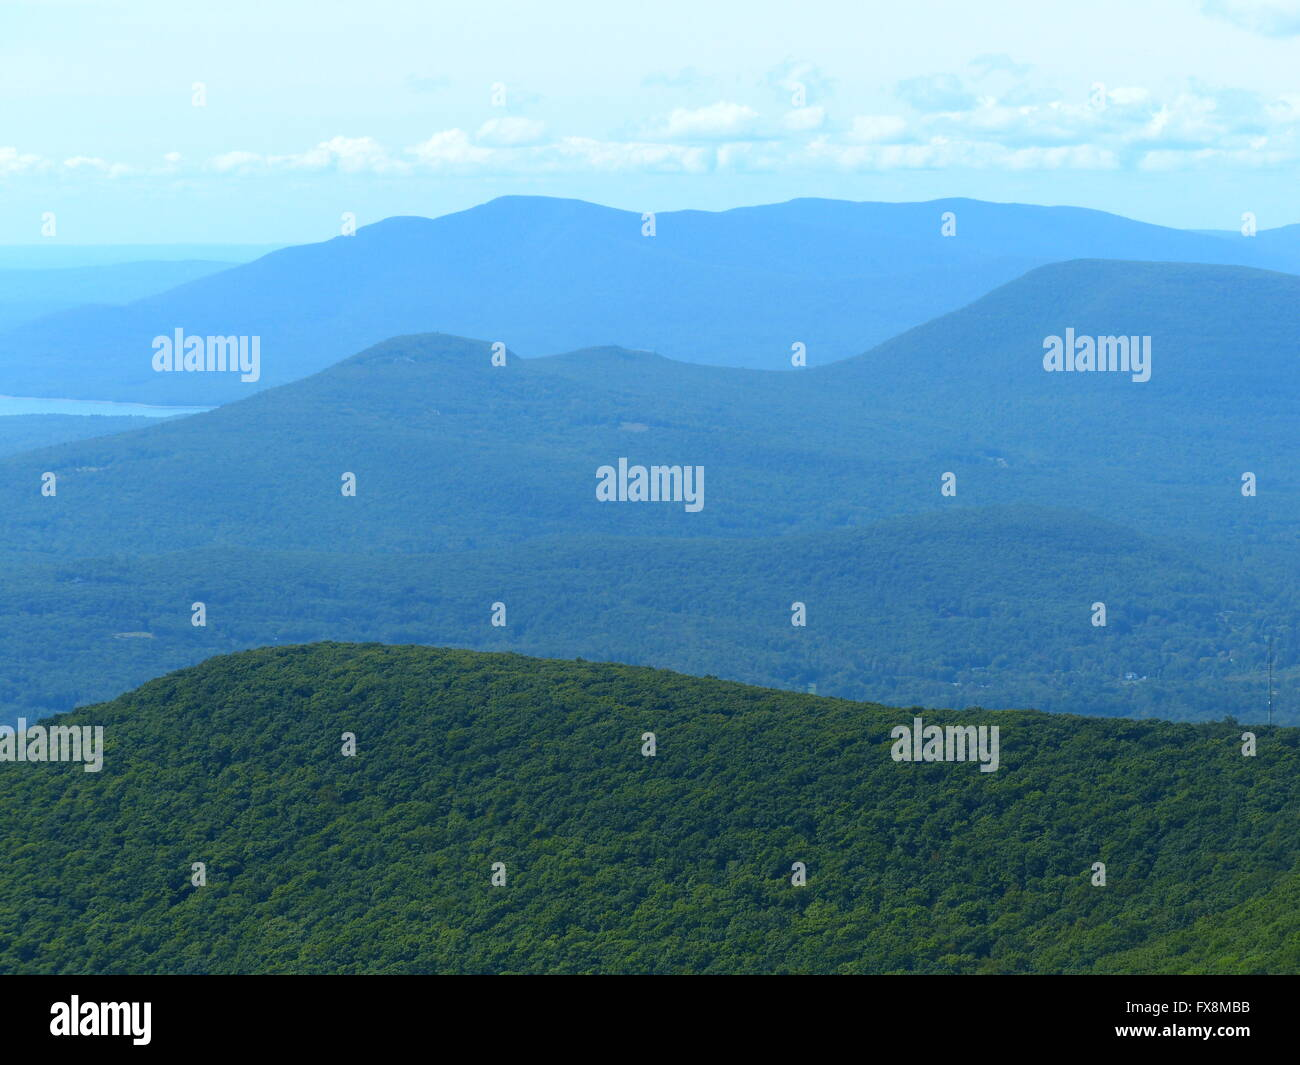 Catskill Mountains In Northeastern United States Stock Photo - United states mountains